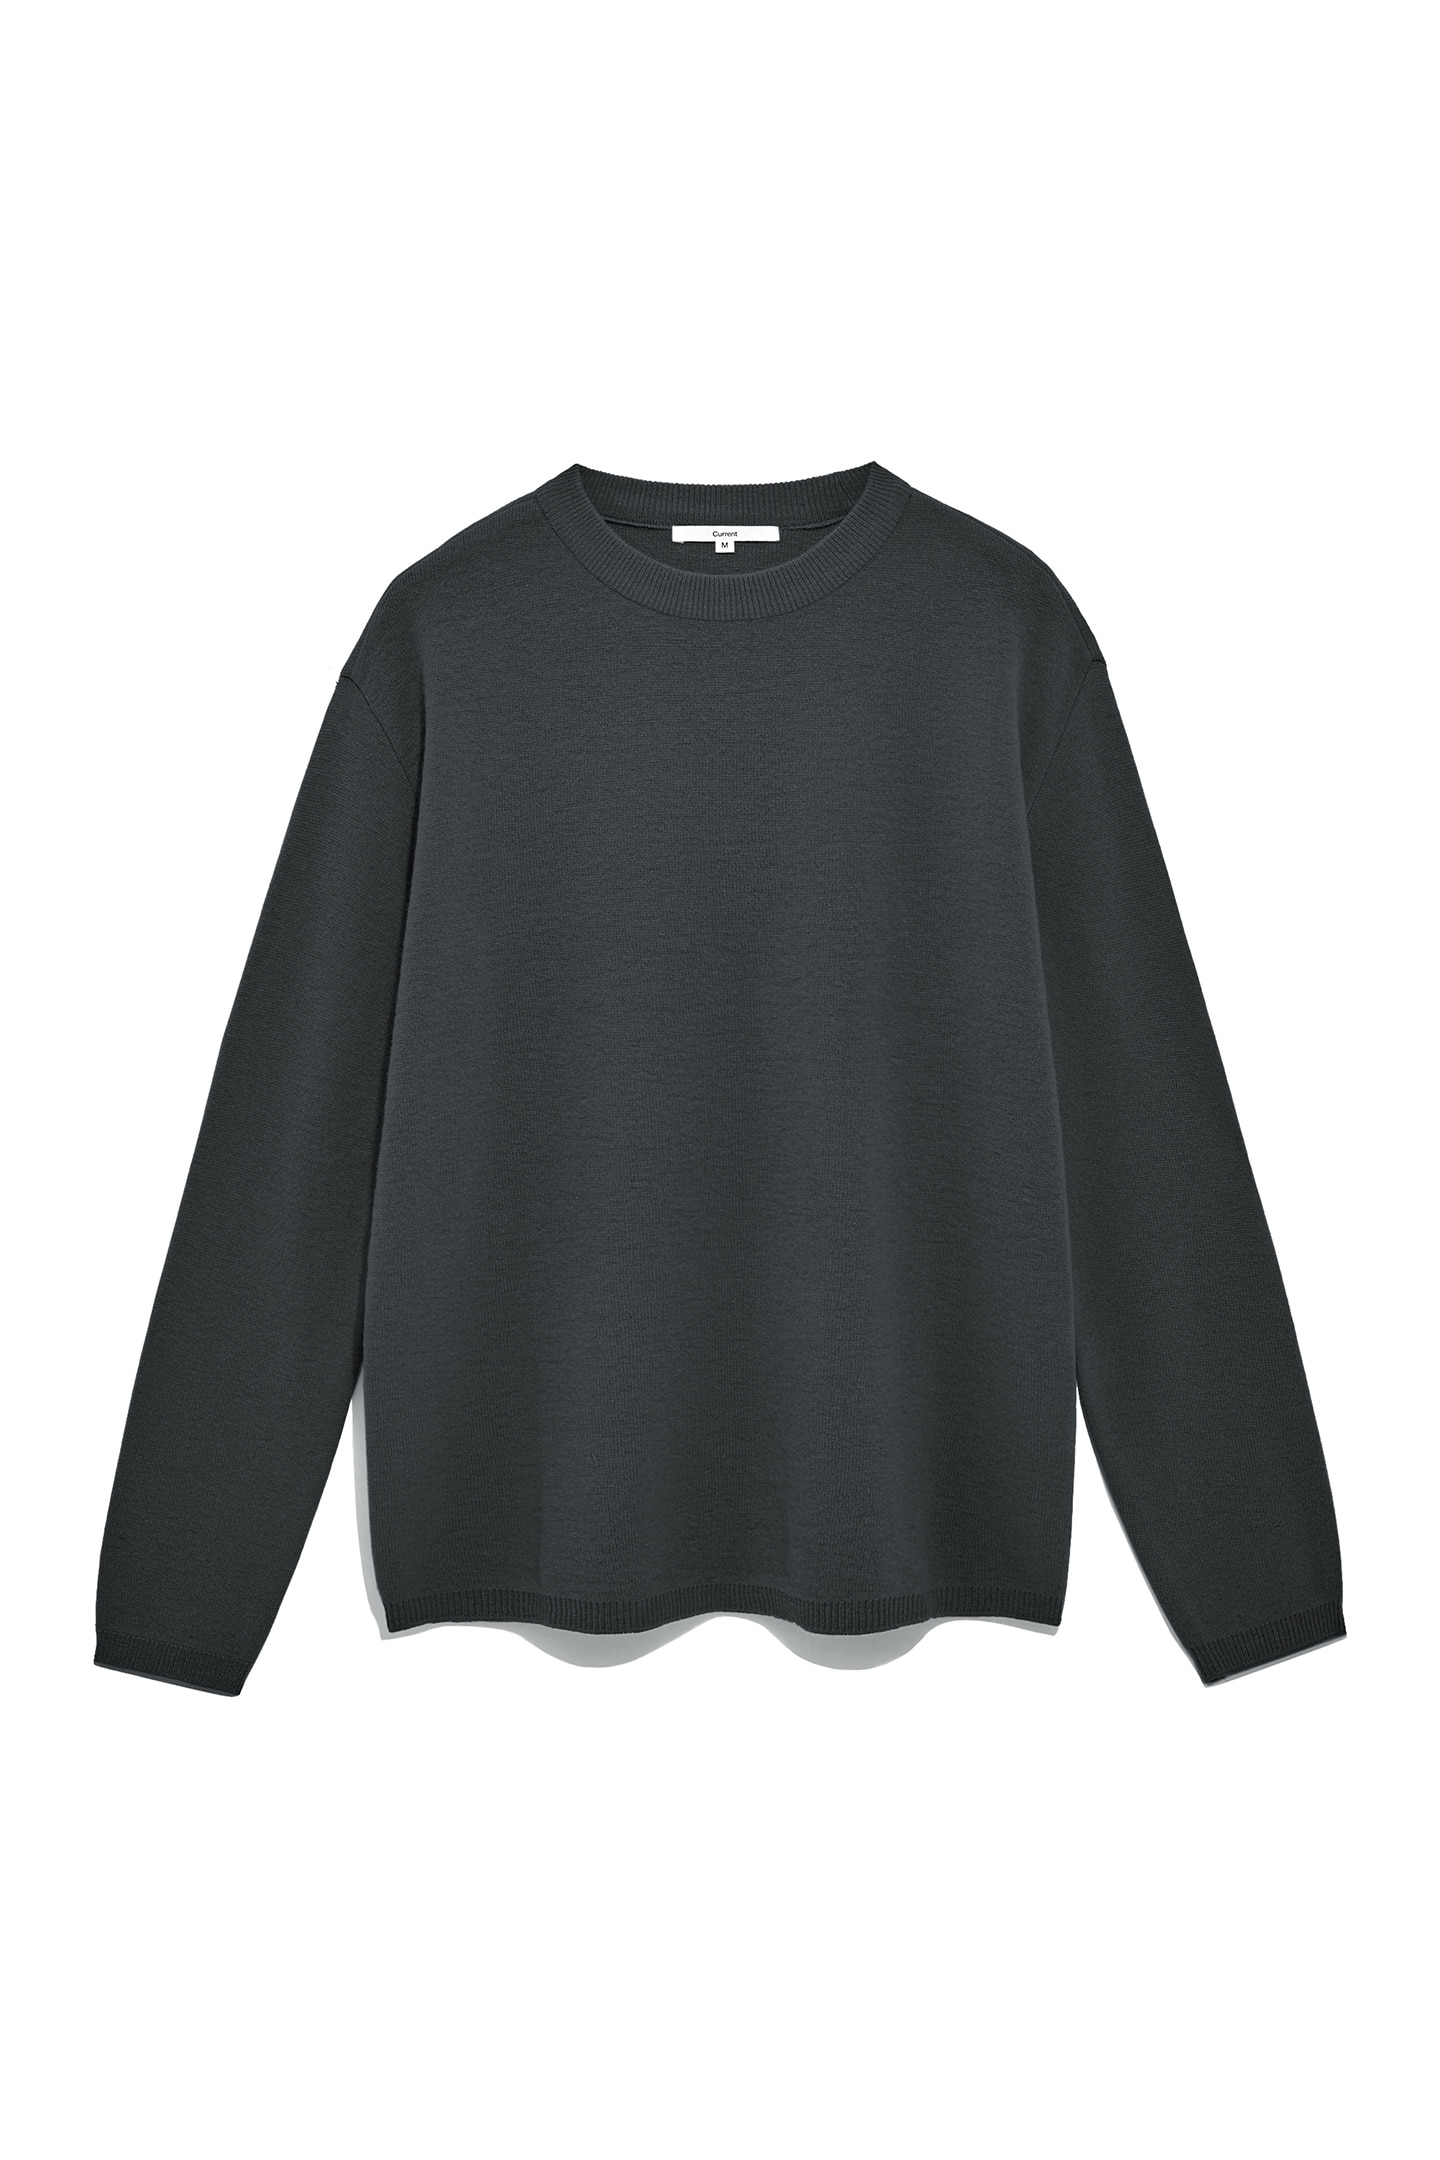 Premium Cash Knit [Charcoal Gray]